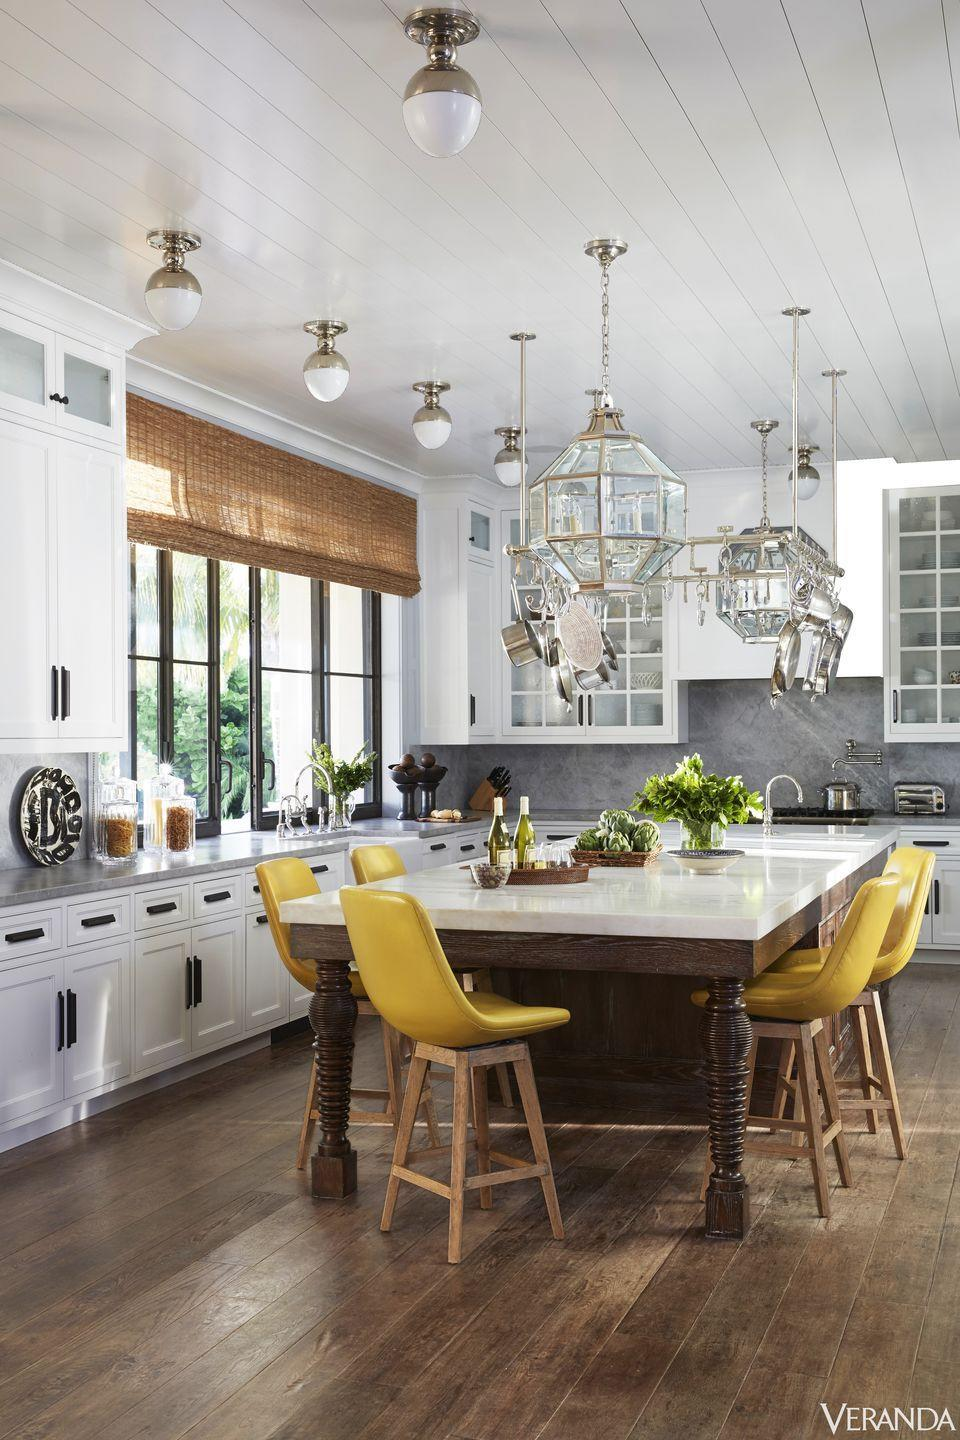 <p>Achieving the perfect glow will never be a problem in this California home which is well-equipped with a mix of overhead lights and striking glass pendants. Especially as the kitchen's island also functions as a casual place to dine and entertain, this beautiful blend of lighting ensures the ambiance is always spot-on. </p>